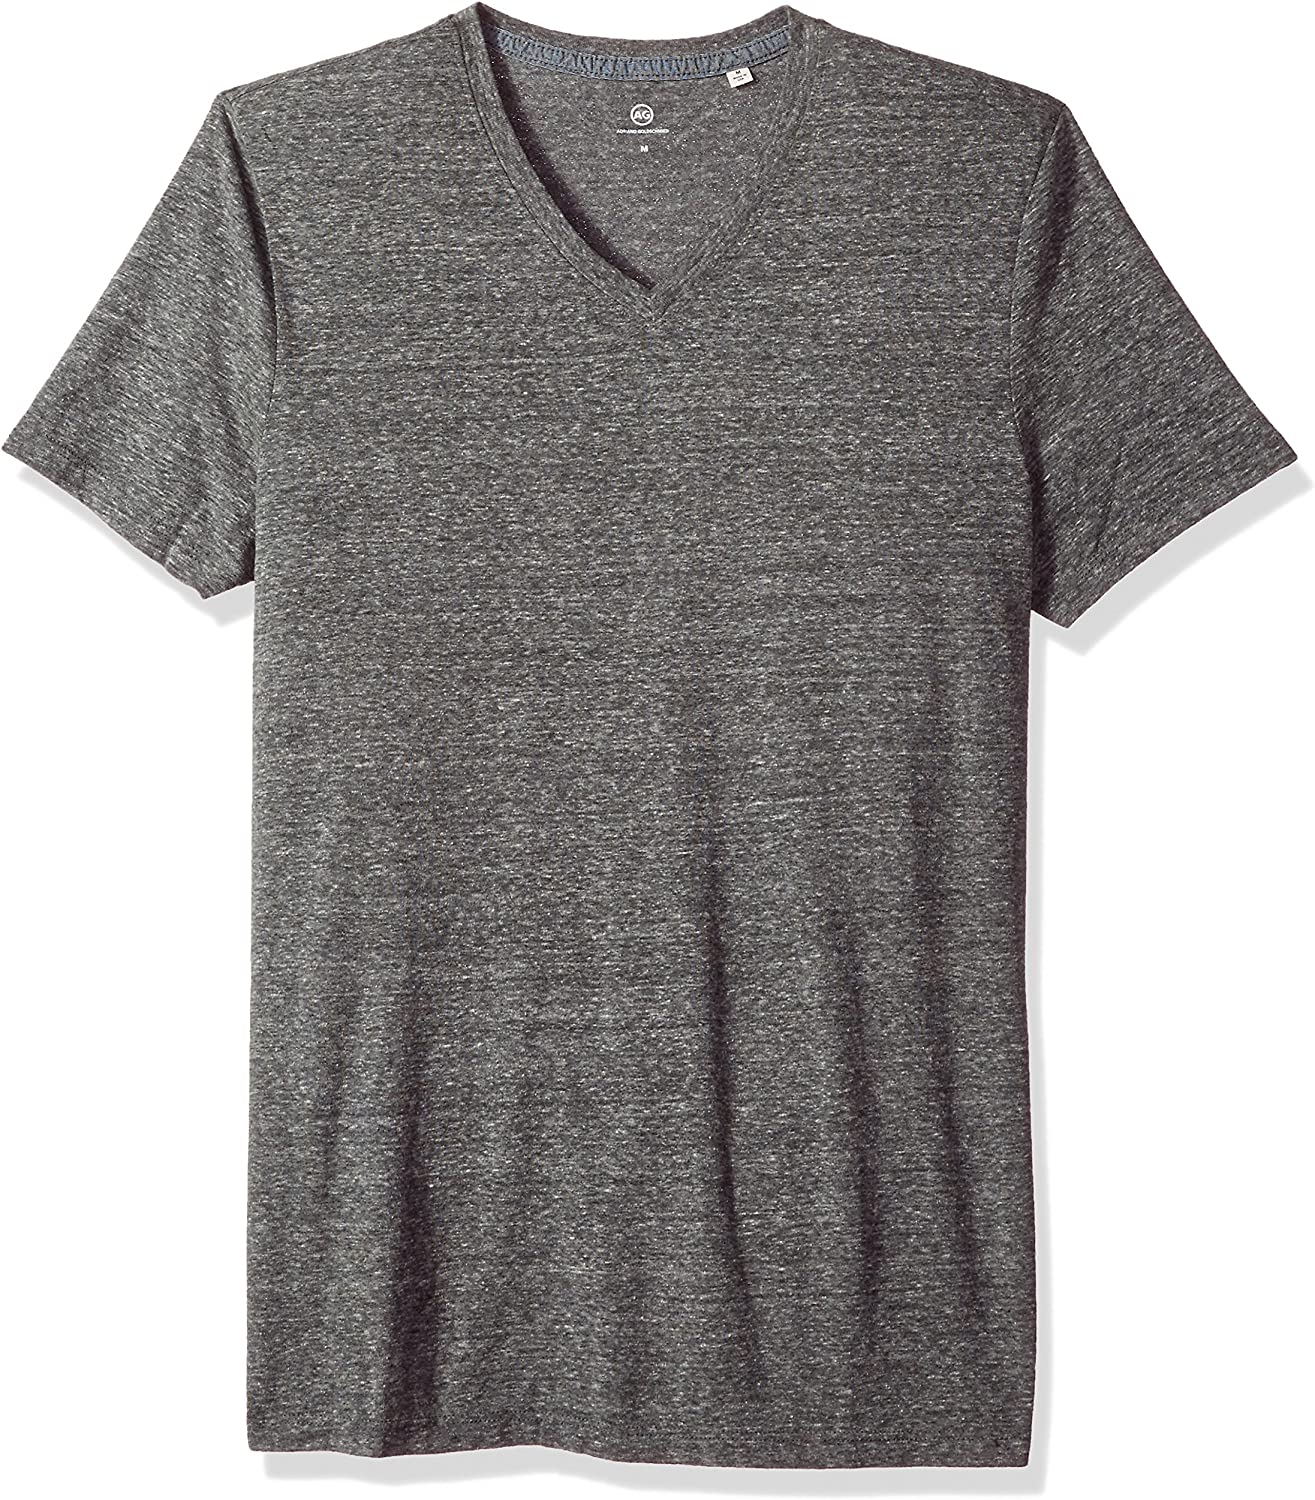 AG Adriano Goldschmied Men's Bryce Short Sleeve Heathered Vee Neck Tee